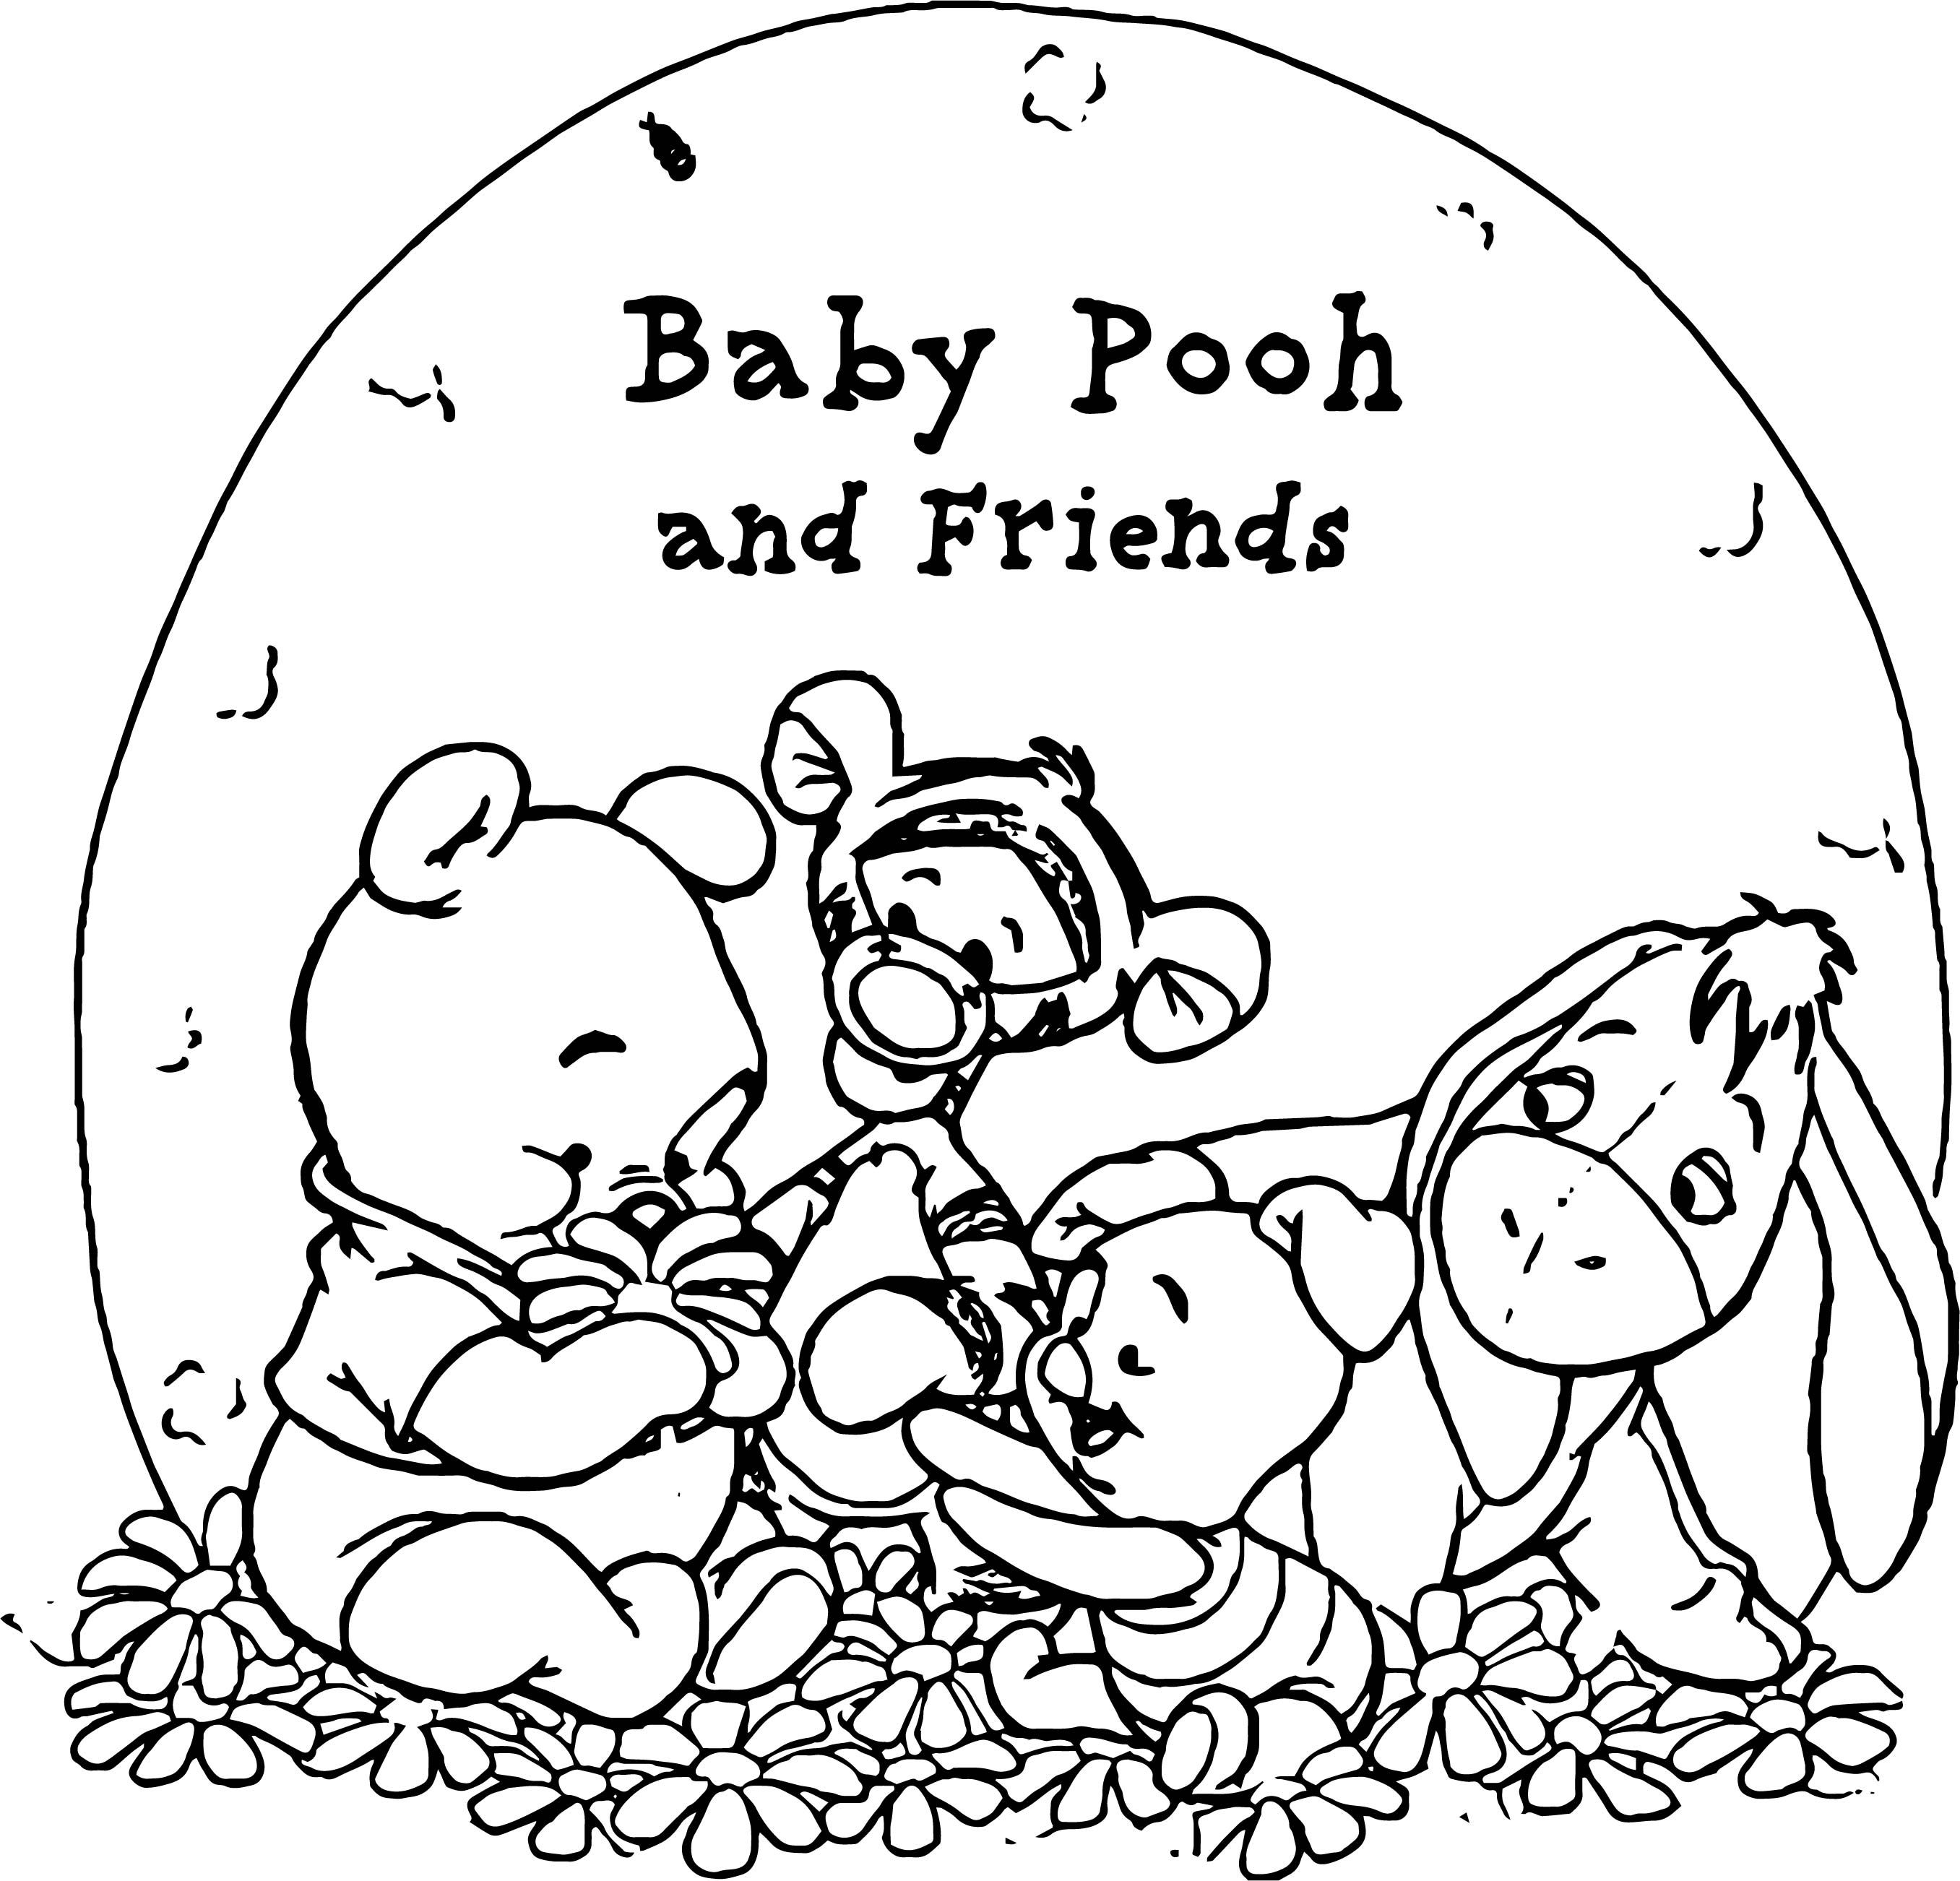 Awesome Pooh Wallpaper Baby Pooh And His Friends Coloring Page Coloring Pages Pooh Coloring Sheets For Kids